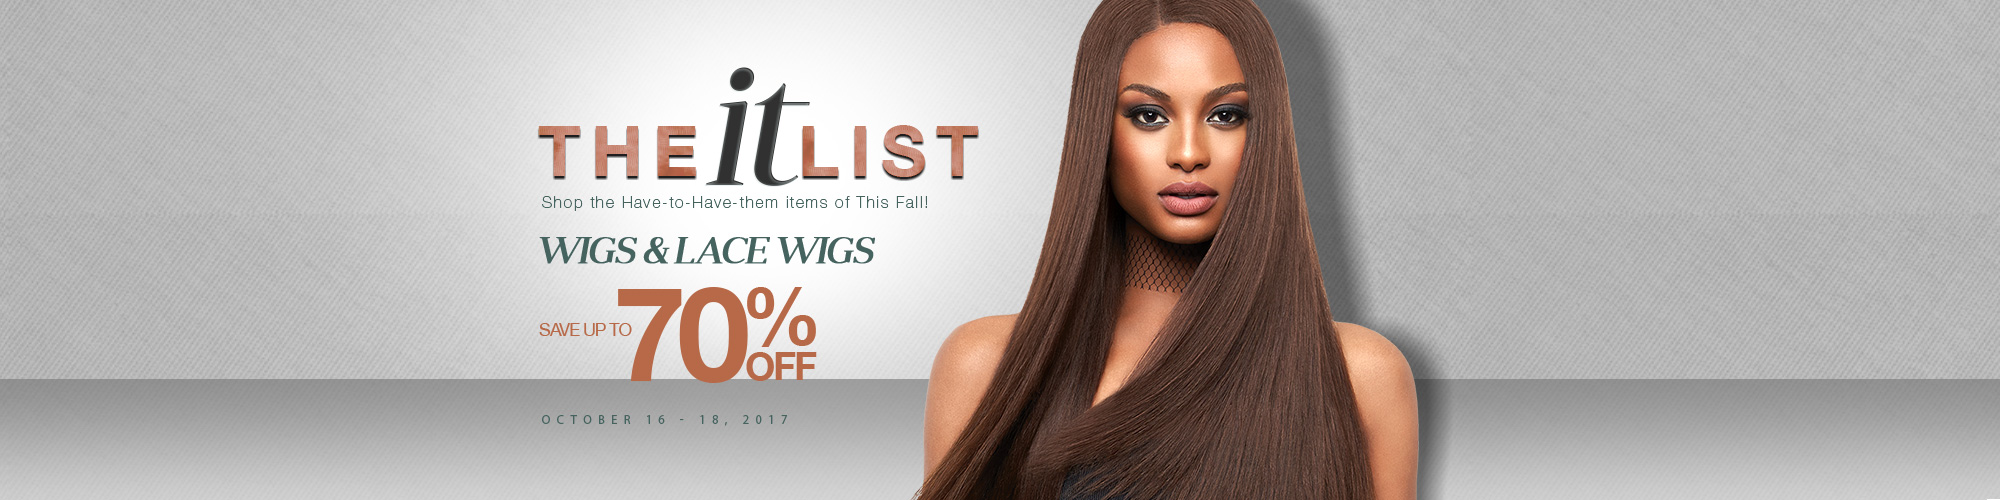 The IT List - Wigs & Lace Wigs